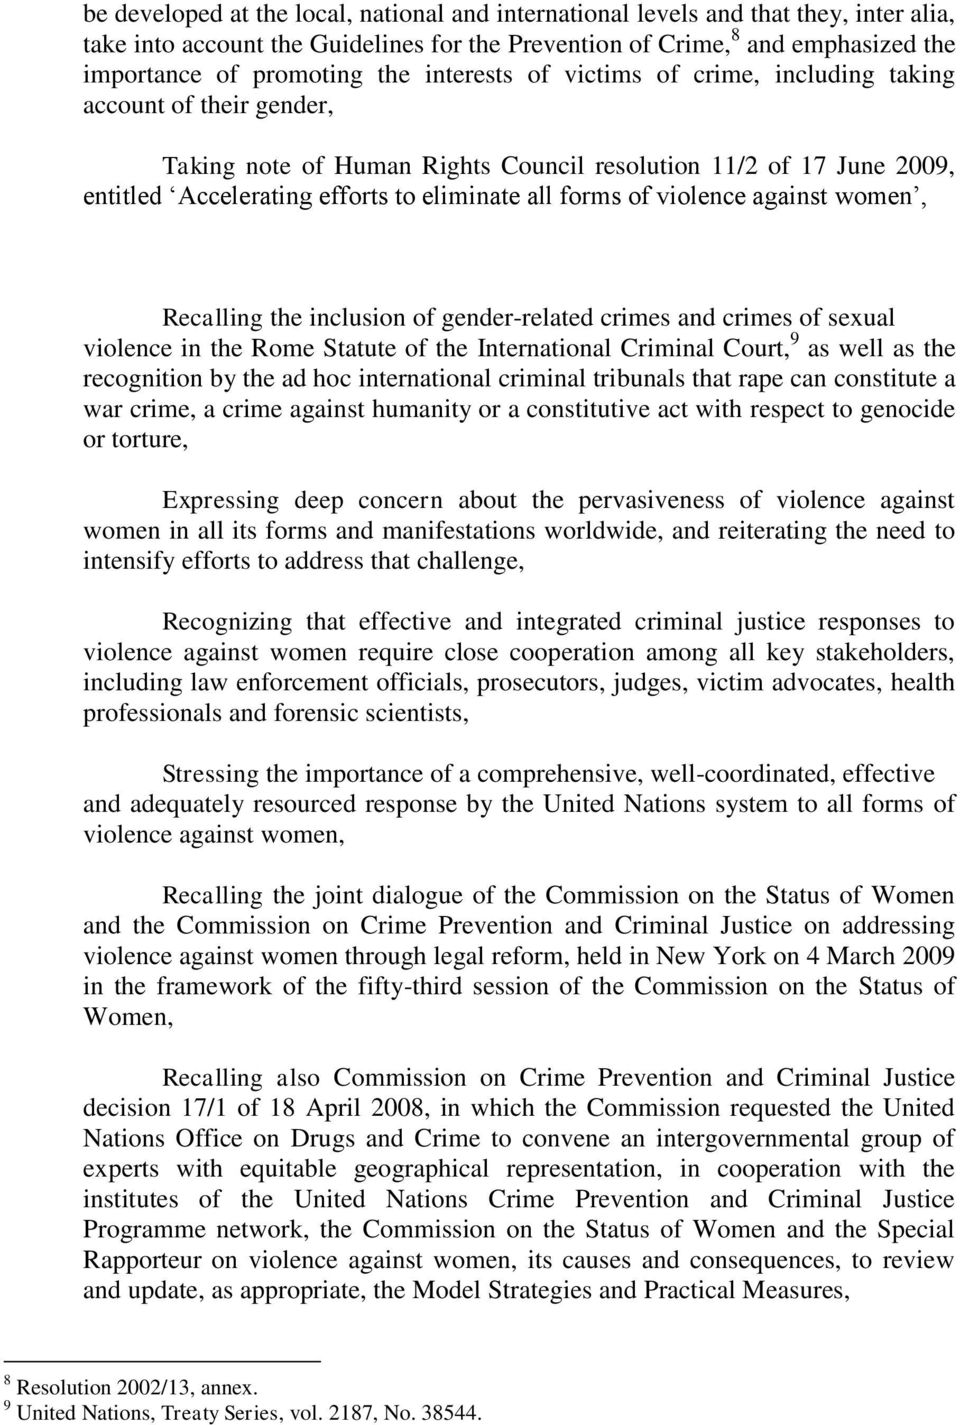 violence against women, Recalling the inclusion of gender-related crimes and crimes of sexual violence in the Rome Statute of the International Criminal Court, 9 as well as the recognition by the ad